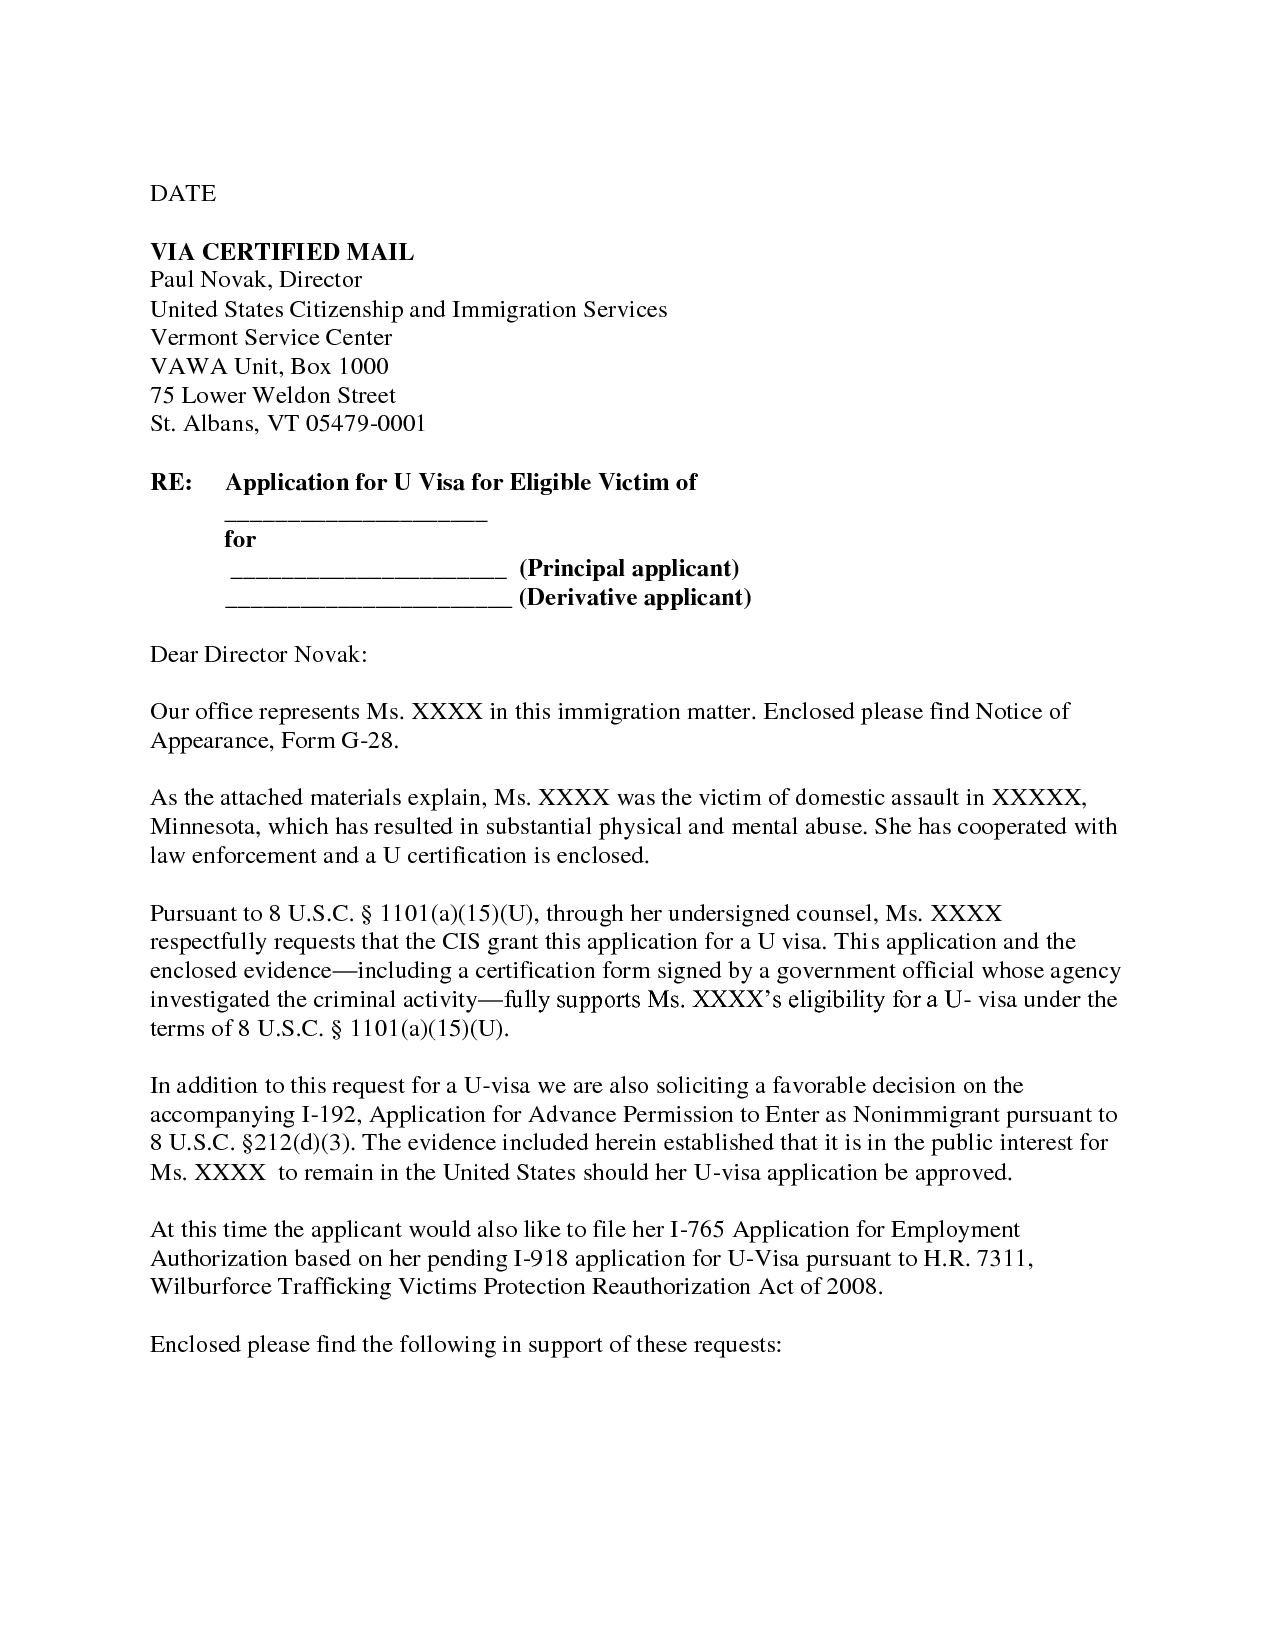 Letter Example Of Waiver For Immigration Sample TemplateVisa Application